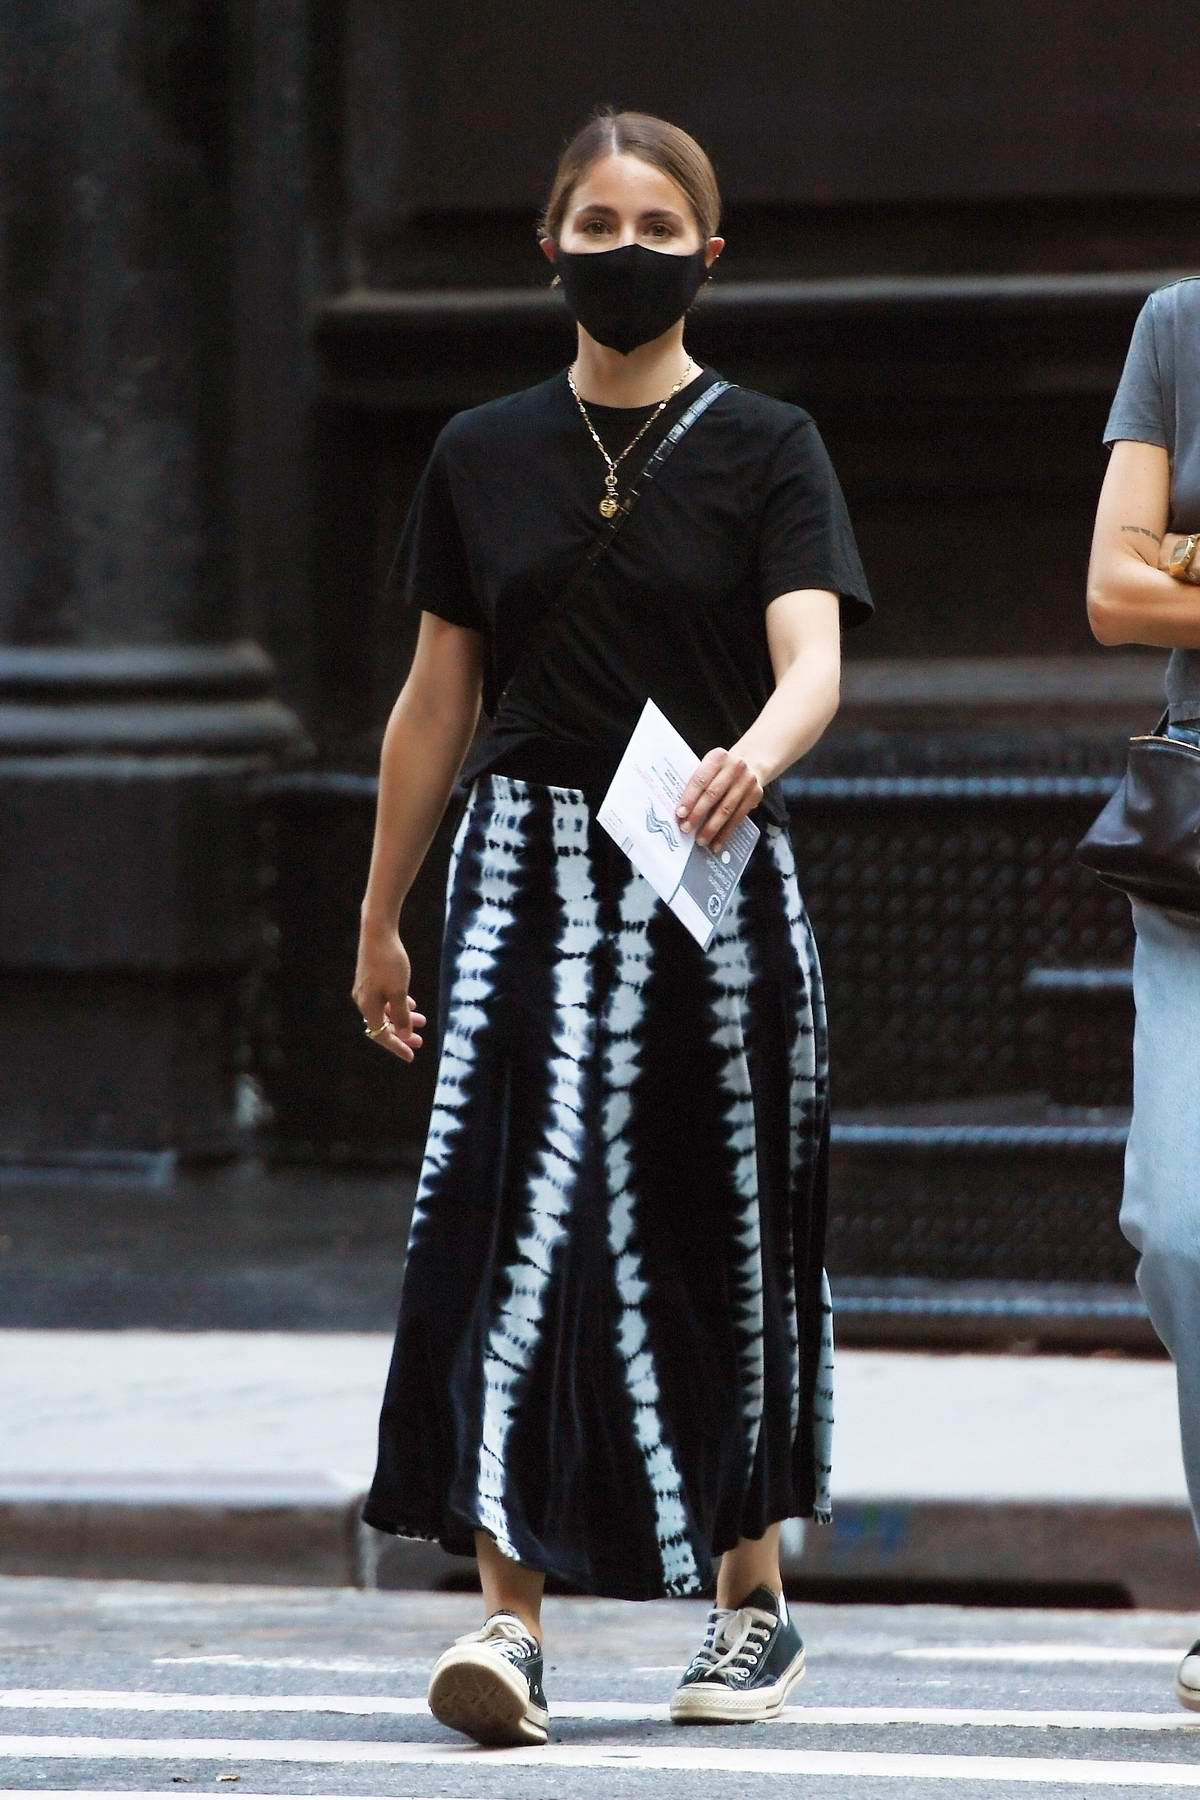 Dianna Agron performs her civic duty and drops off her ballot in New York City